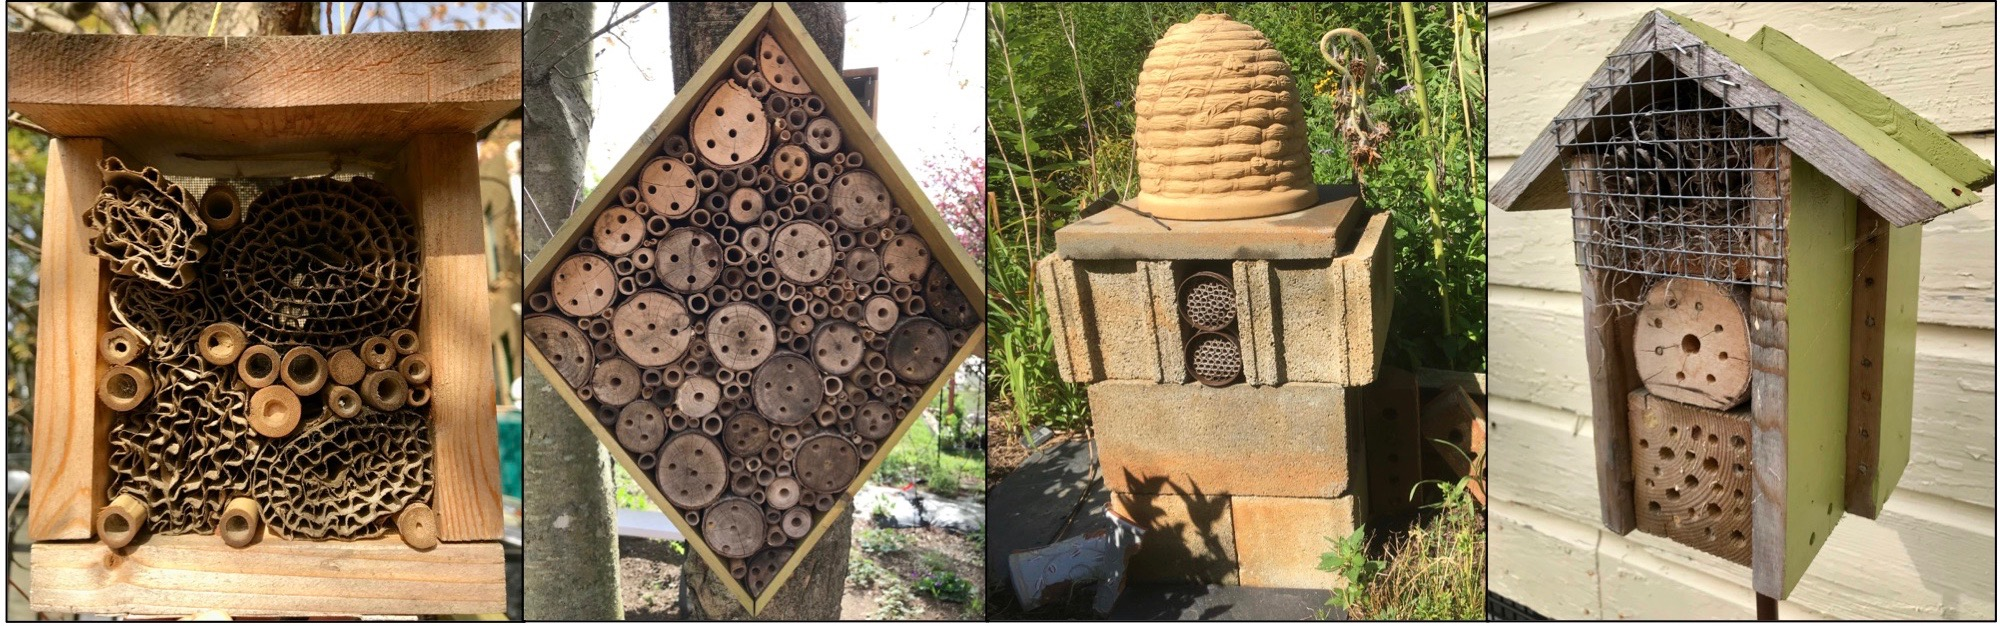 Selection of bee hotels of various sizes showing canes and other materials.